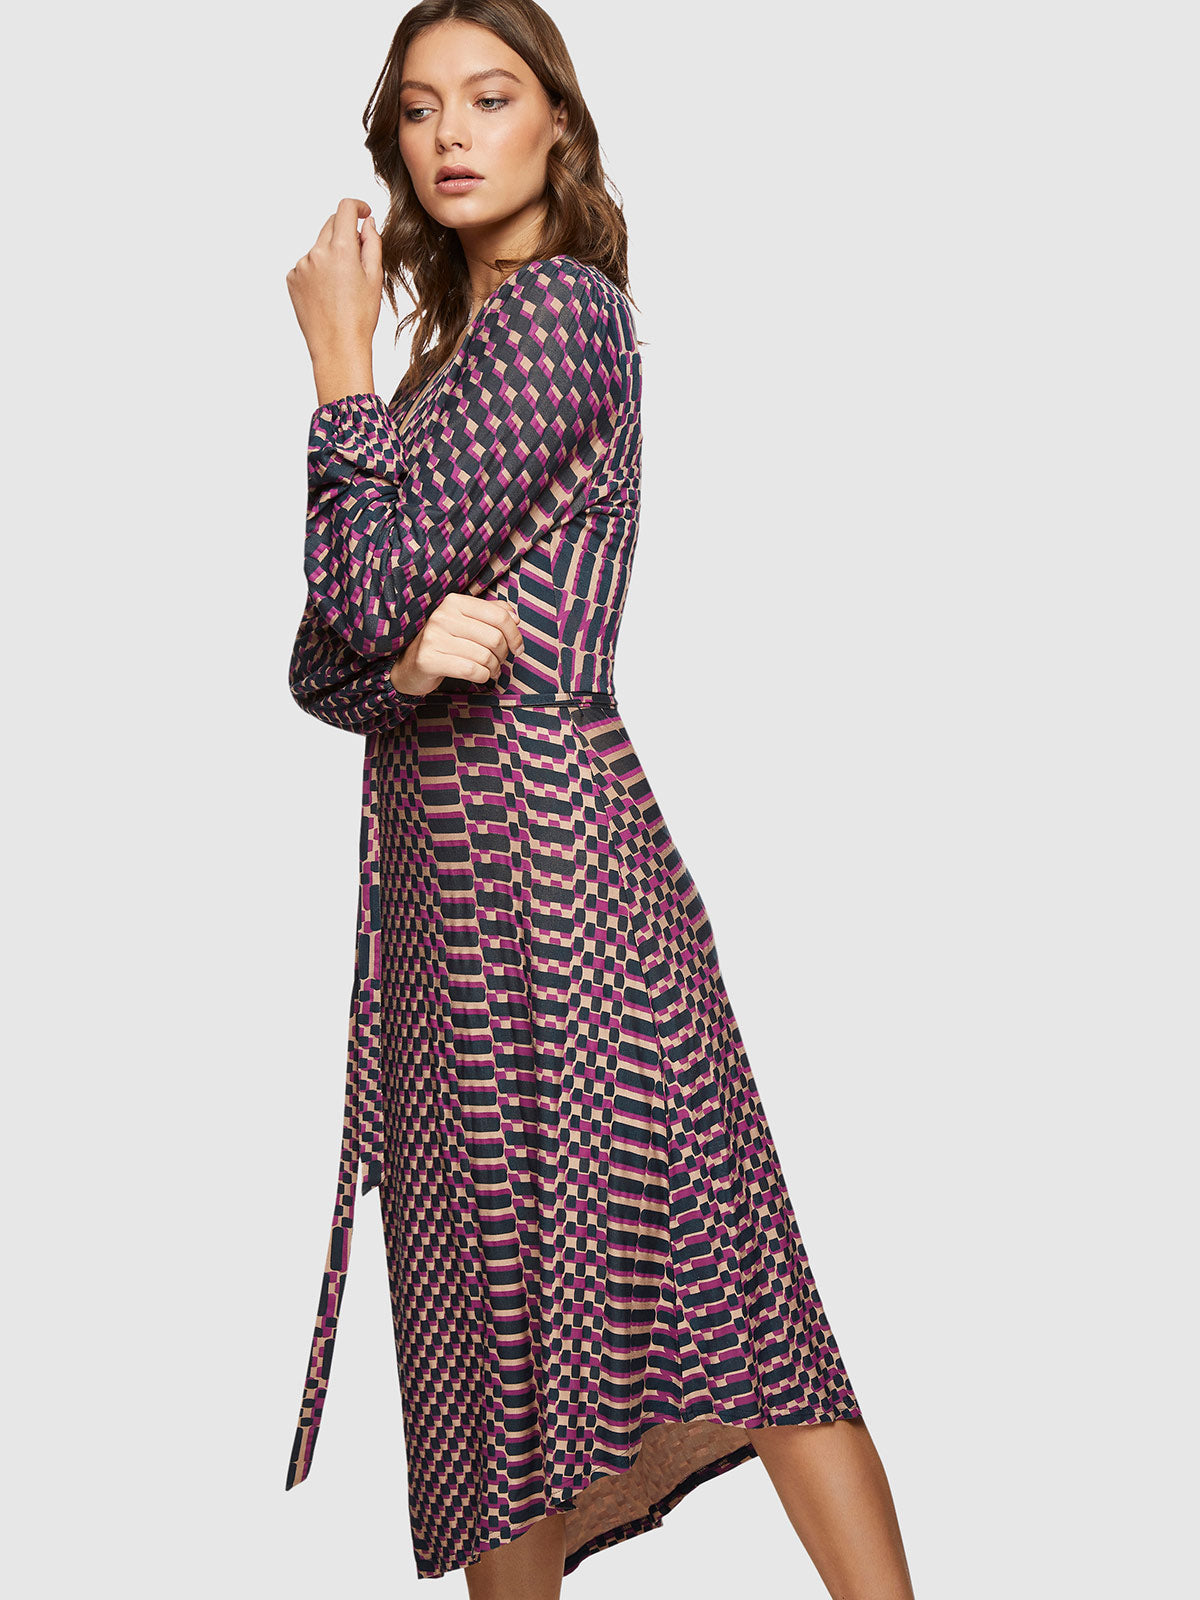 FION JERSEY PRINTED DRESS NAVY/WINE